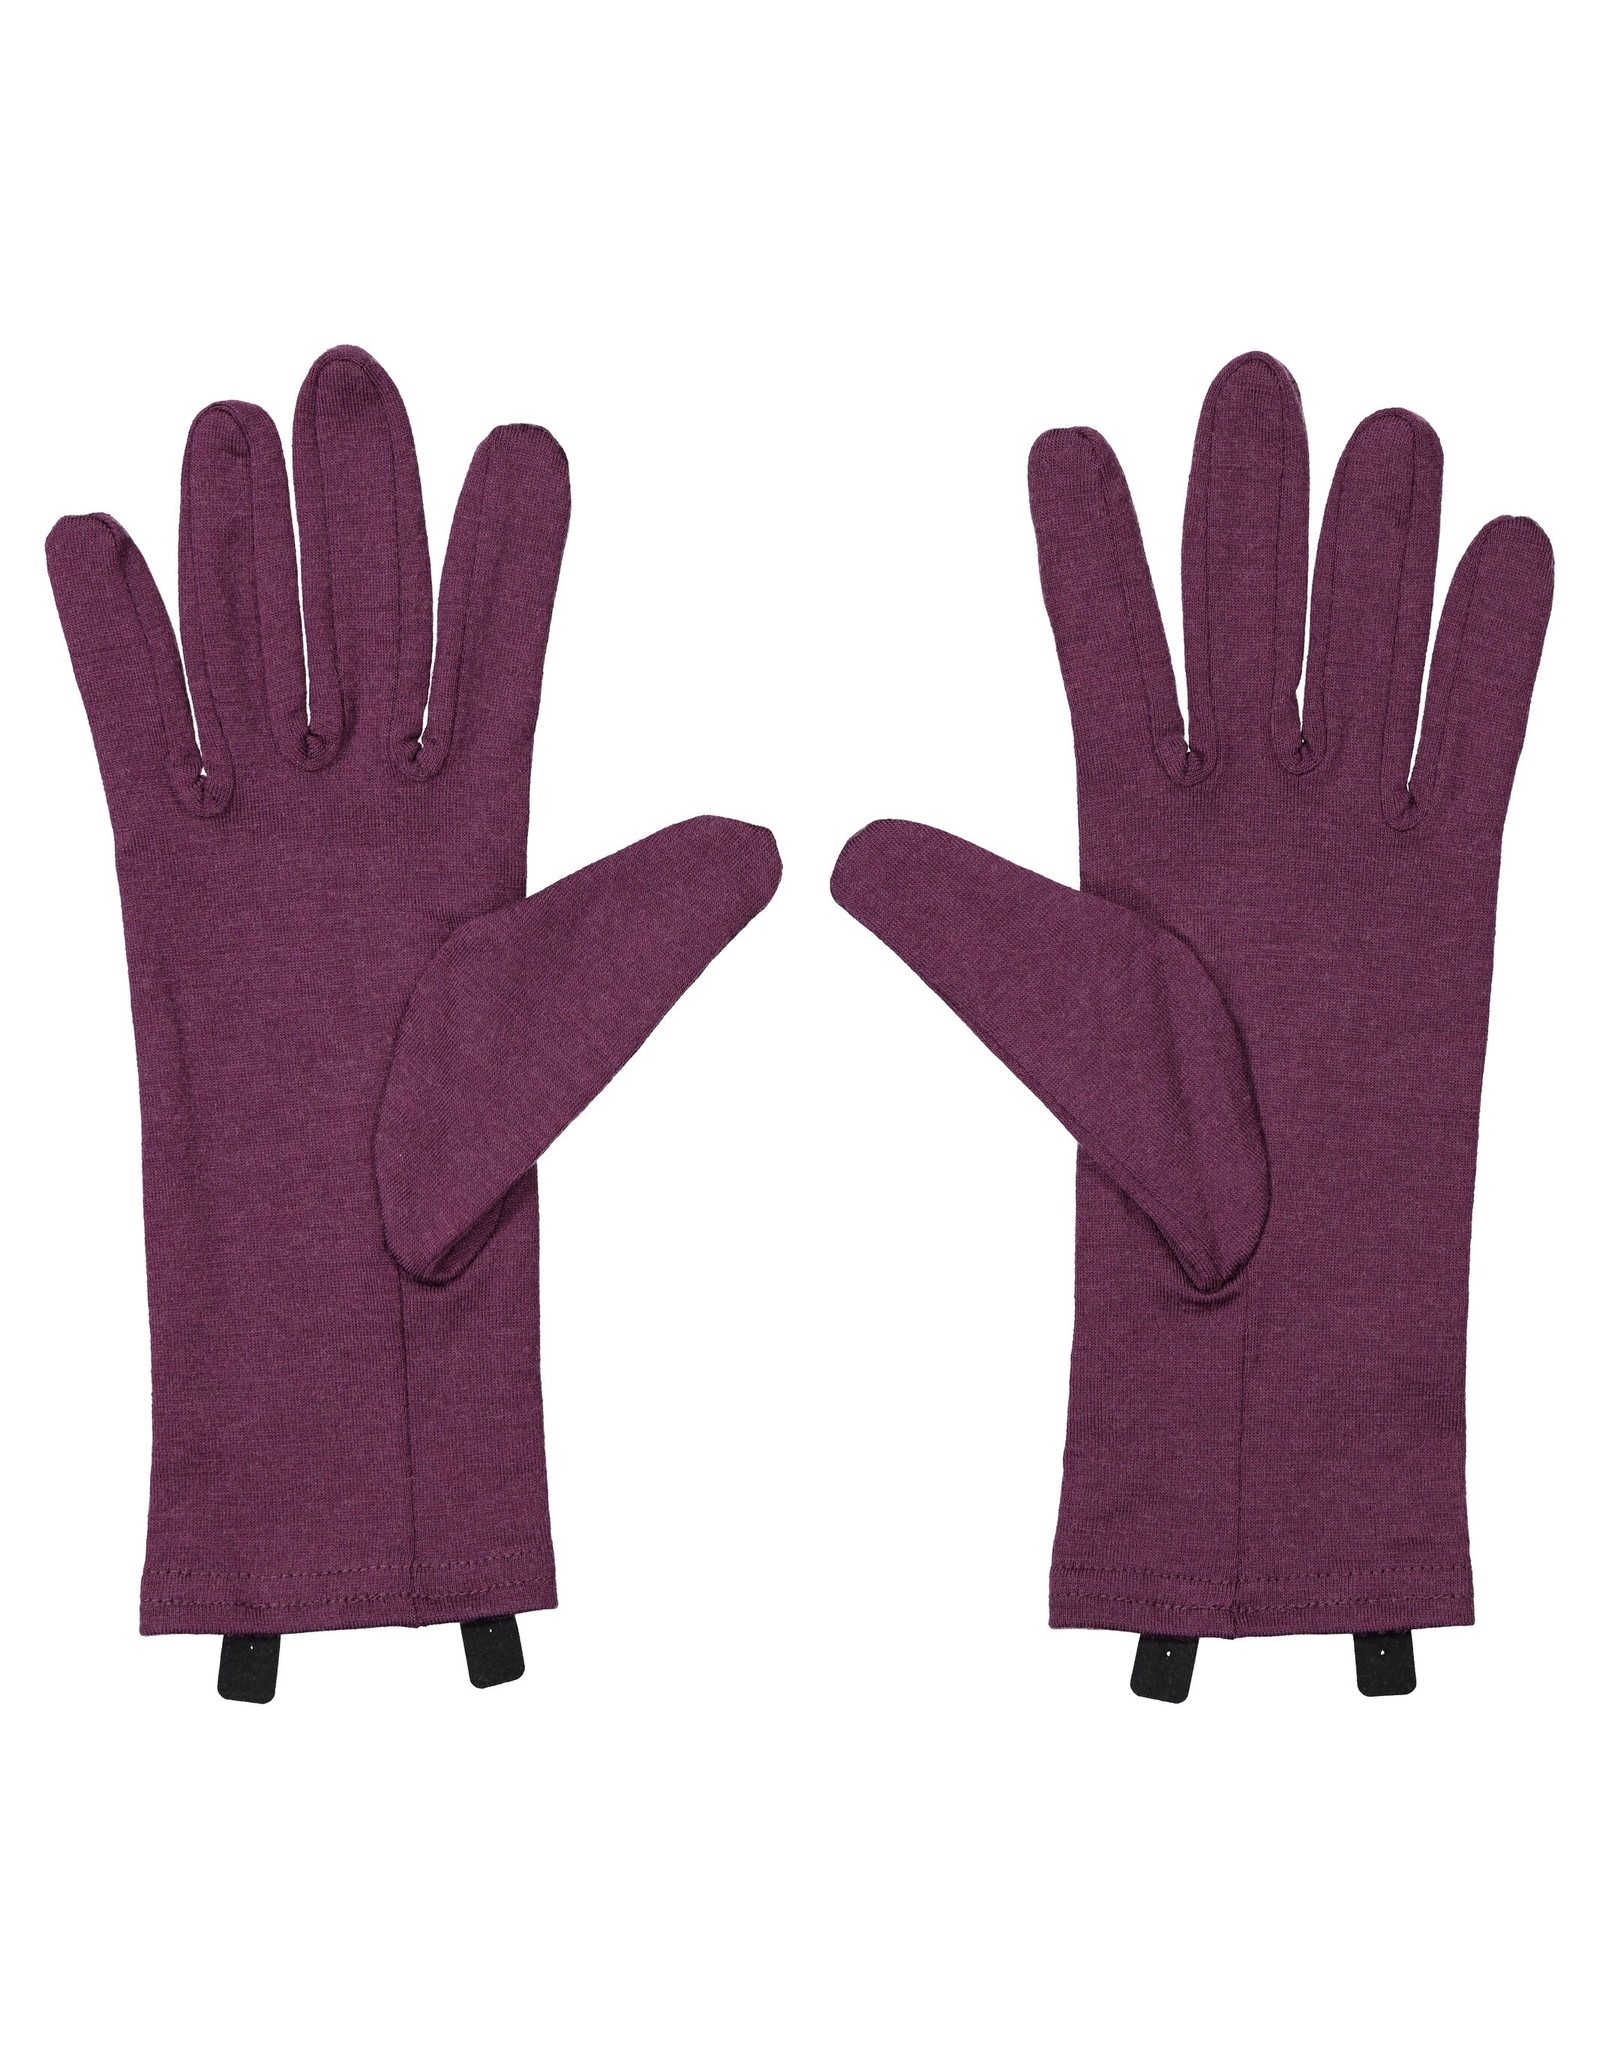 Mons Royale Mons Royale Cold Days Glove Liner-Unisex -W2020